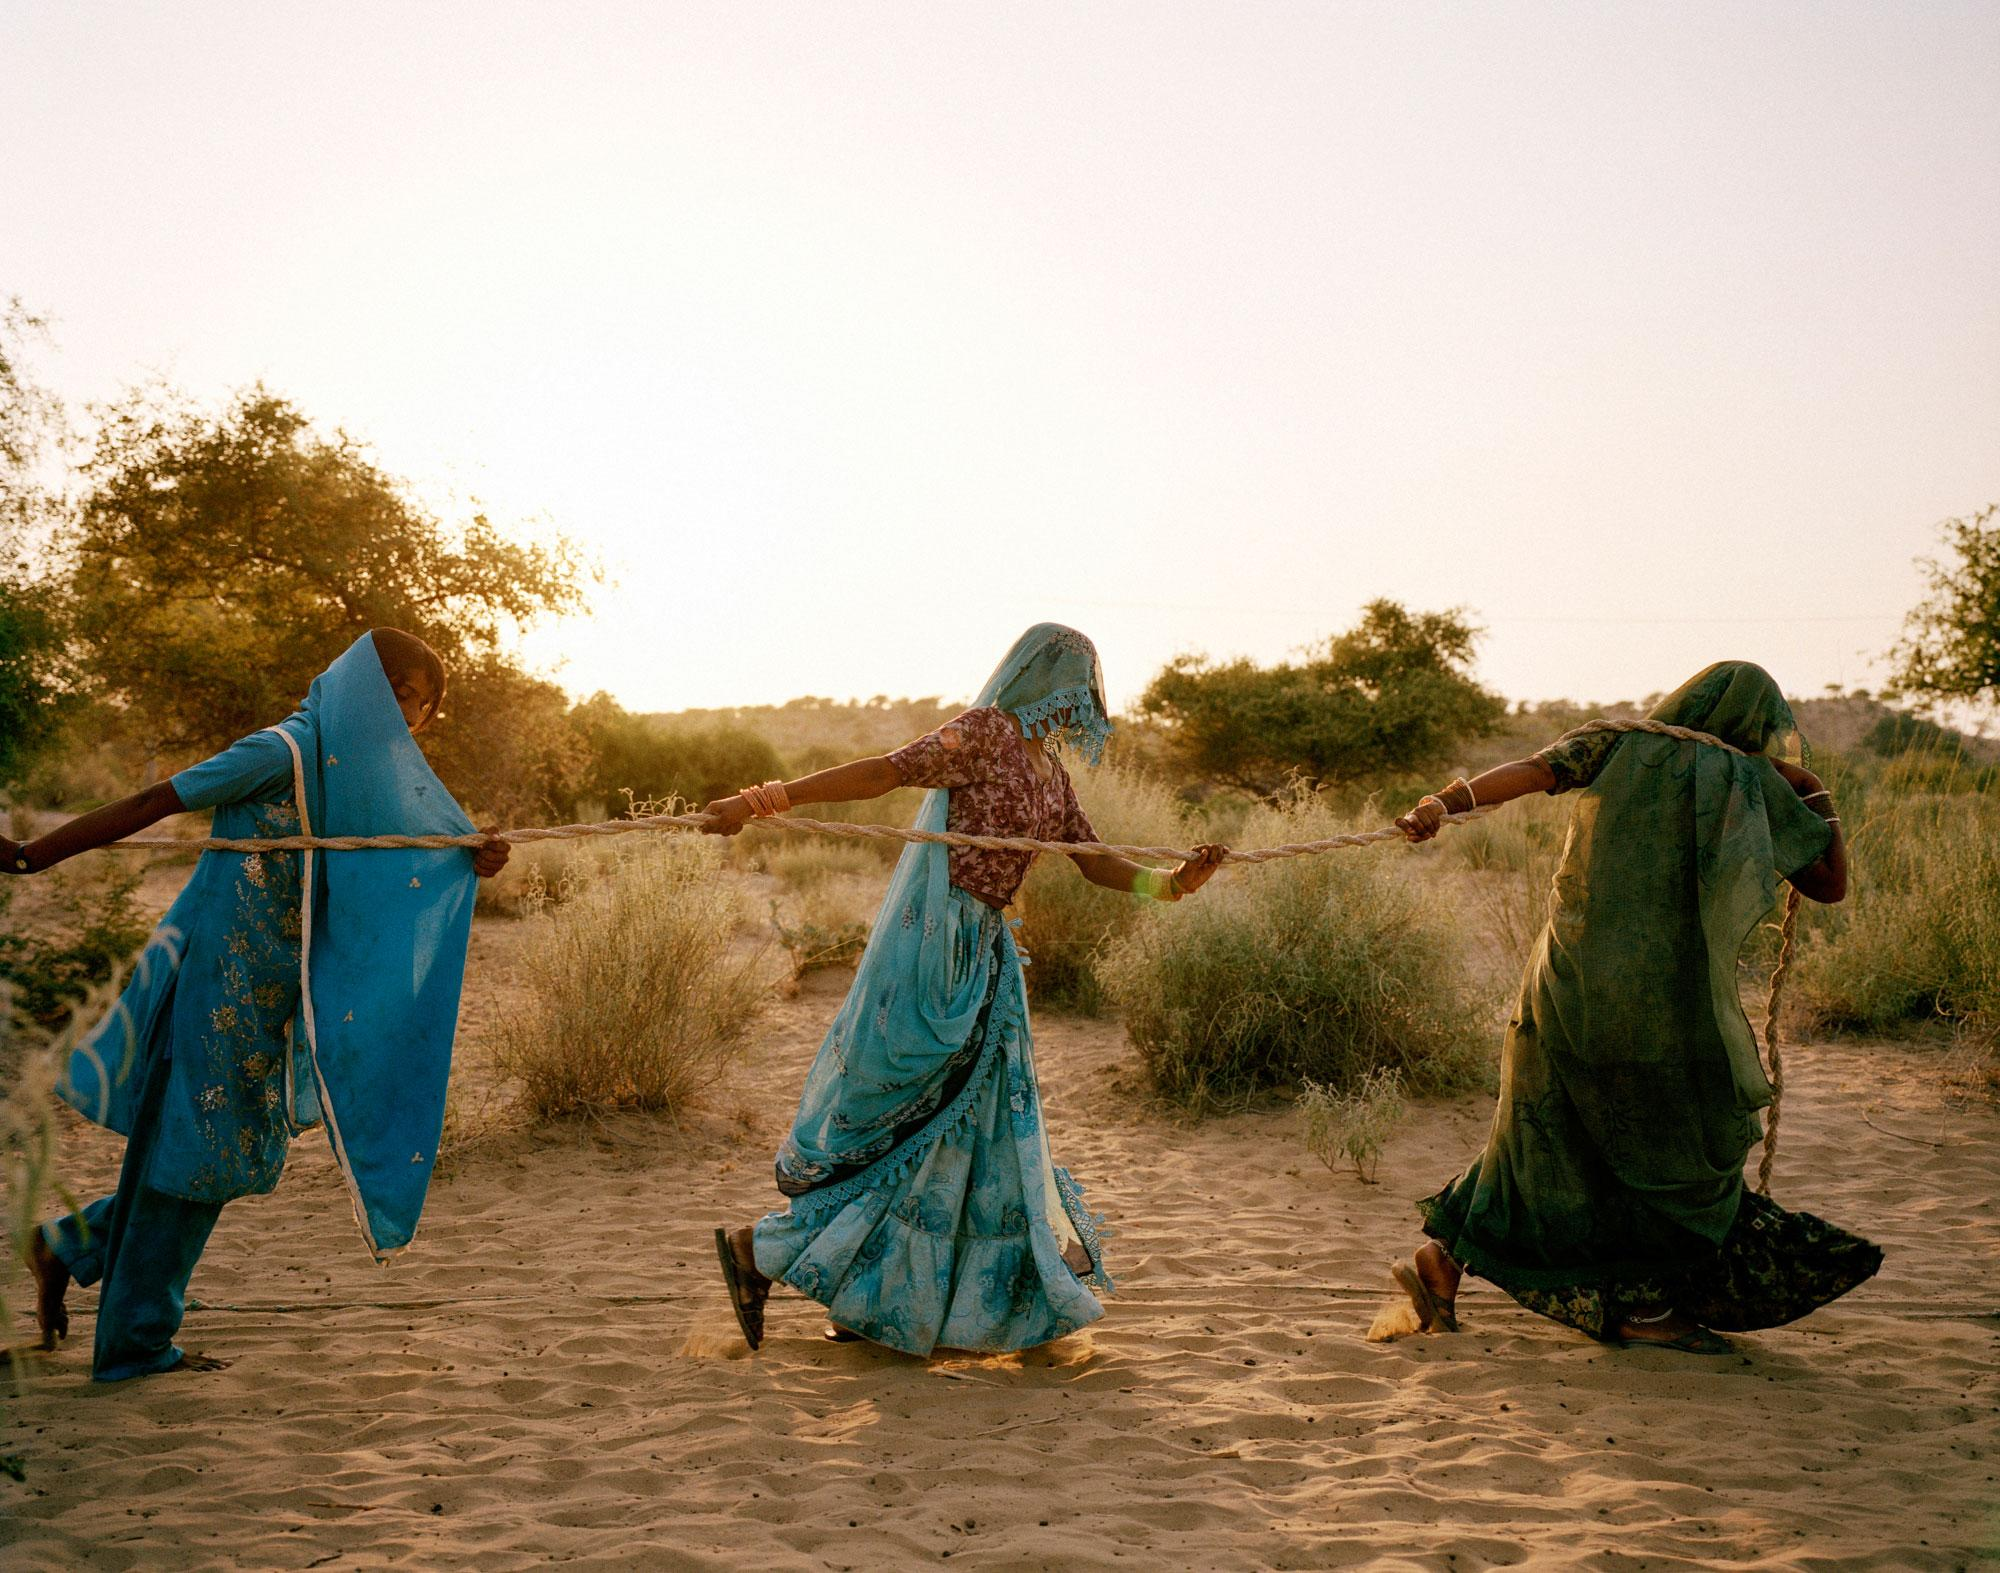 "<p>Women haul water from a 150-foot-deep well in the Thar desert, three hours' walk from their home in Bewatoo, Tharparkar, Sindh, Pakistan, 2013. Temperatures there hover at 48-50°C on summer days. With an extremely low water table and continuing drought, sometimes water must be hauled from a depth of 150 to 200 feet. ""Women fall unconscious on their way to these dug wells,"" says Marvi Bheel, 45, a resident of Bewatoo, Tharparkar. From the water-scarce regions in southern Ethiopia to the desert wells of Pakistan, it is women who are primarily responsible for gathering water. (Photograph by Mustafah Abdulaziz/WaterAid) </p>"